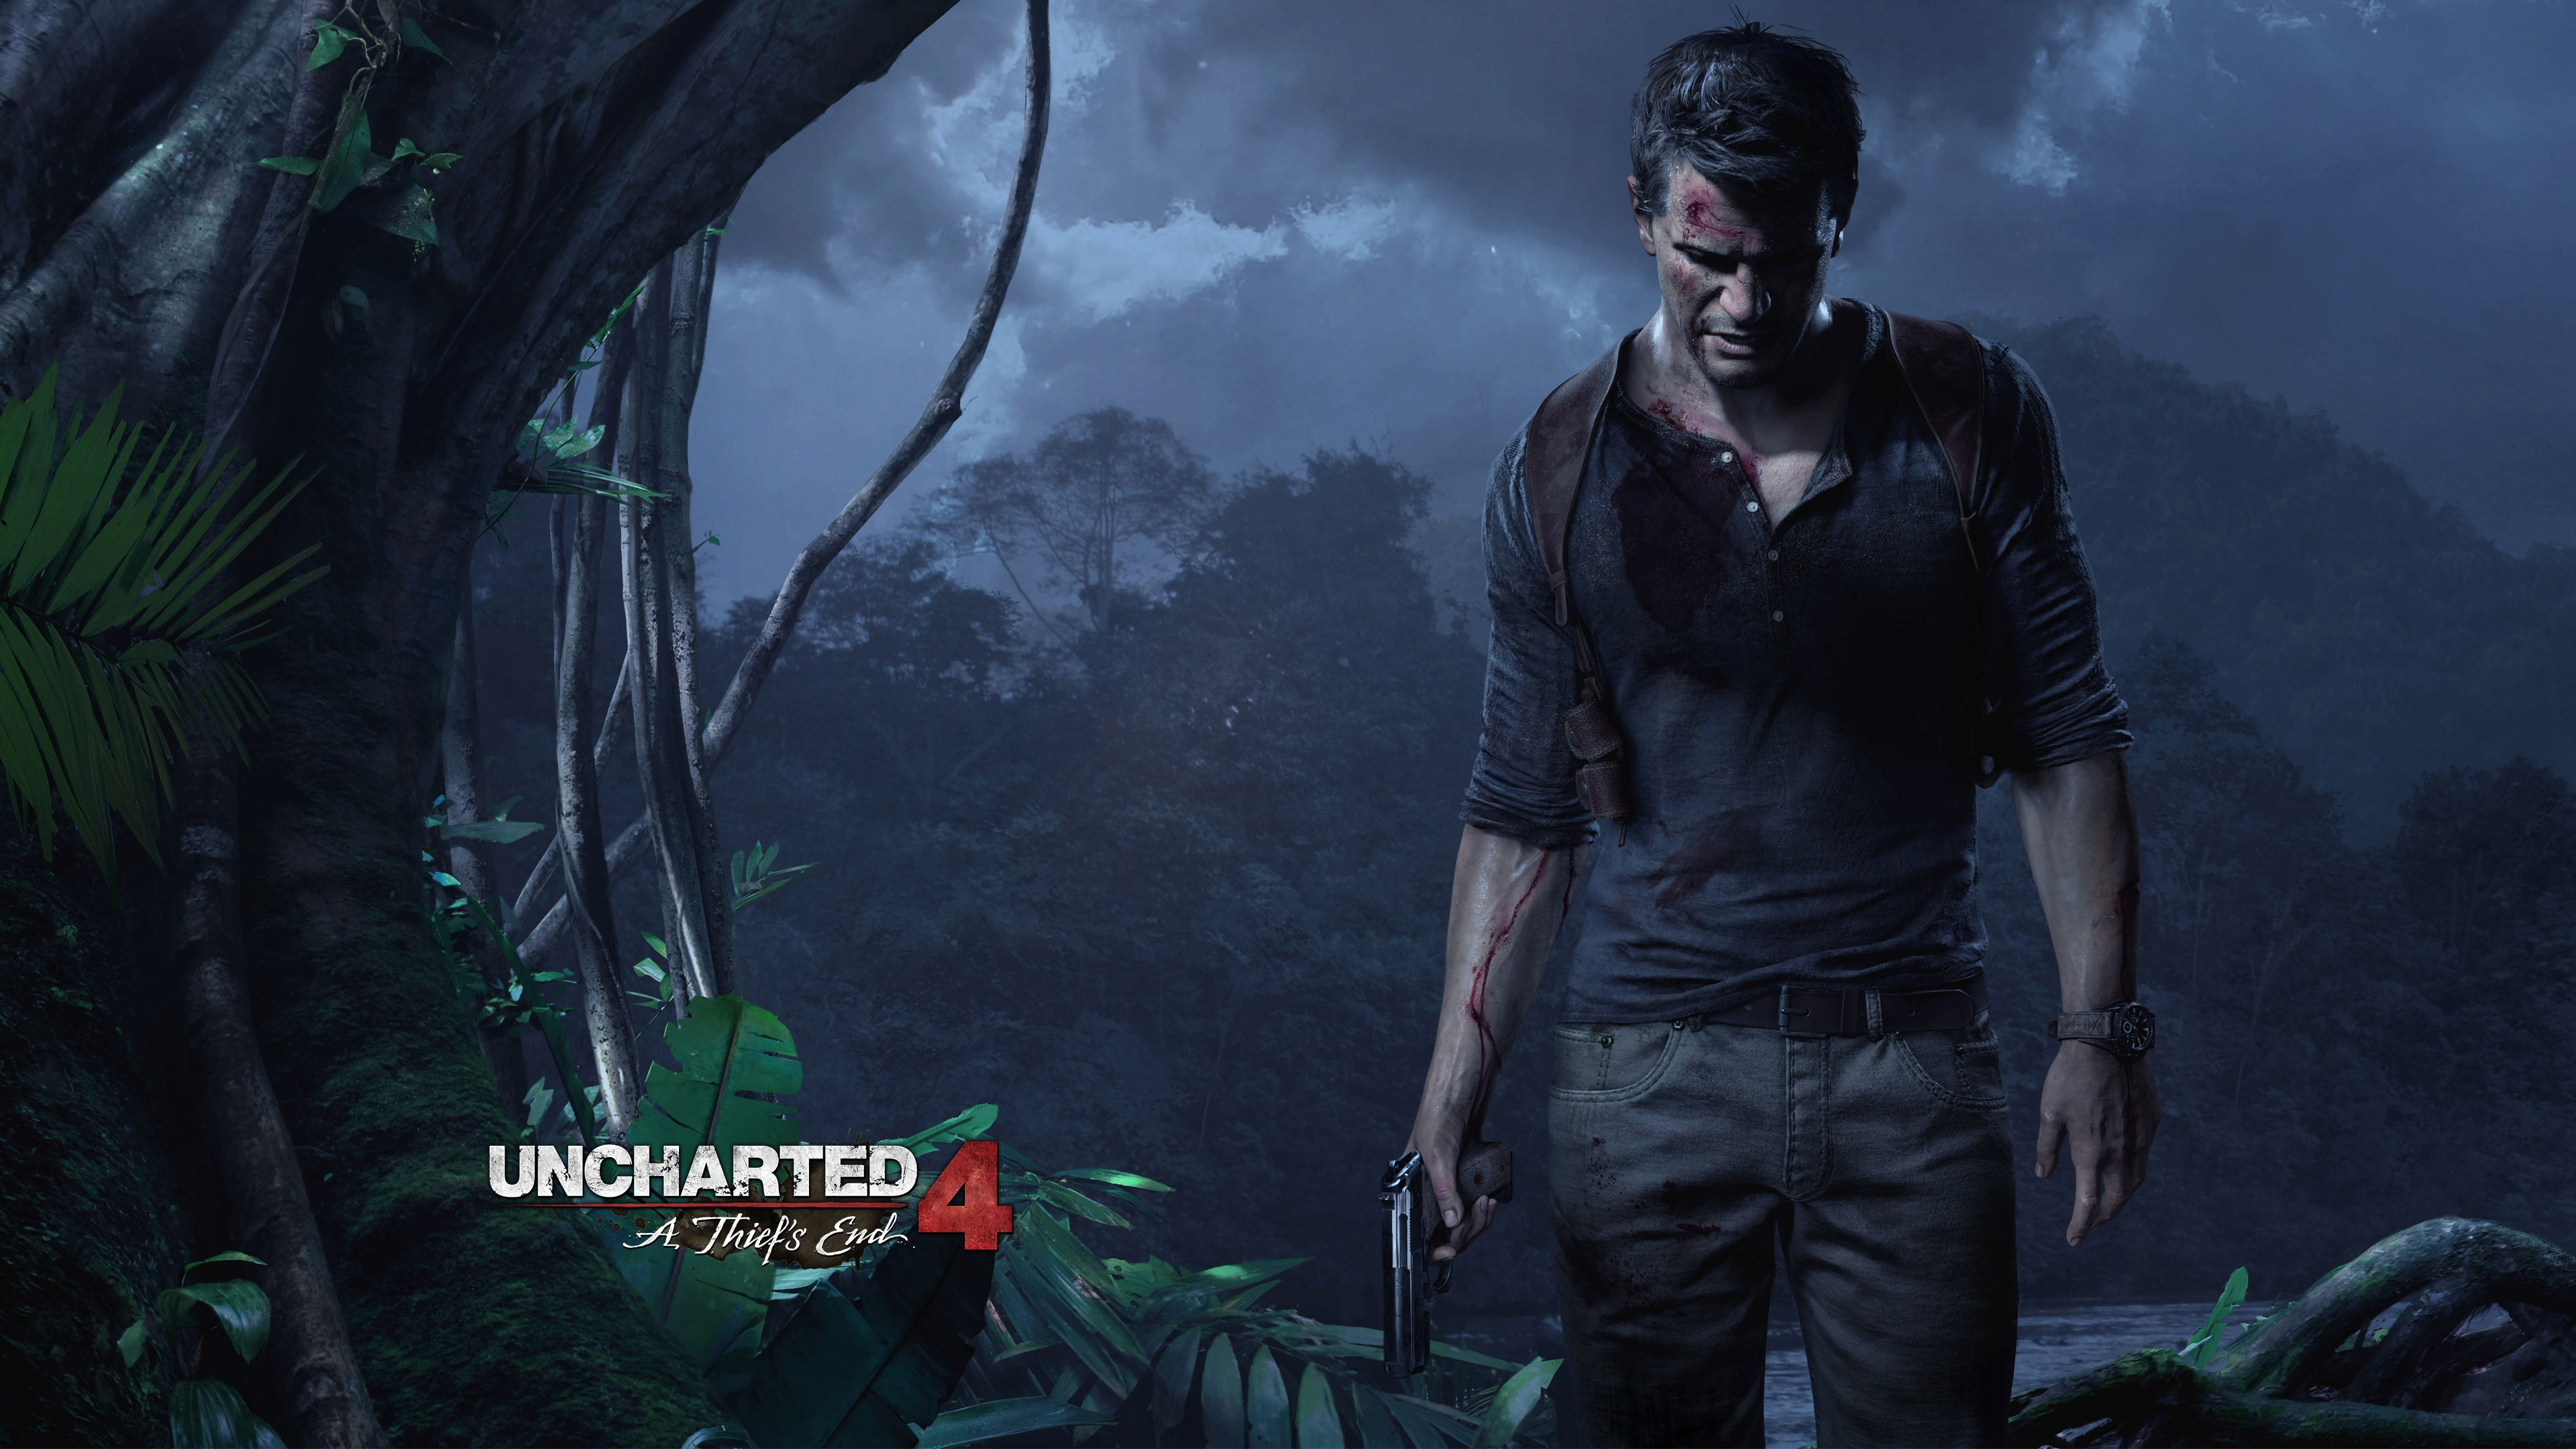 uncharted 4: a thief's end wallpapers in ultra hd | 4k - gameranx